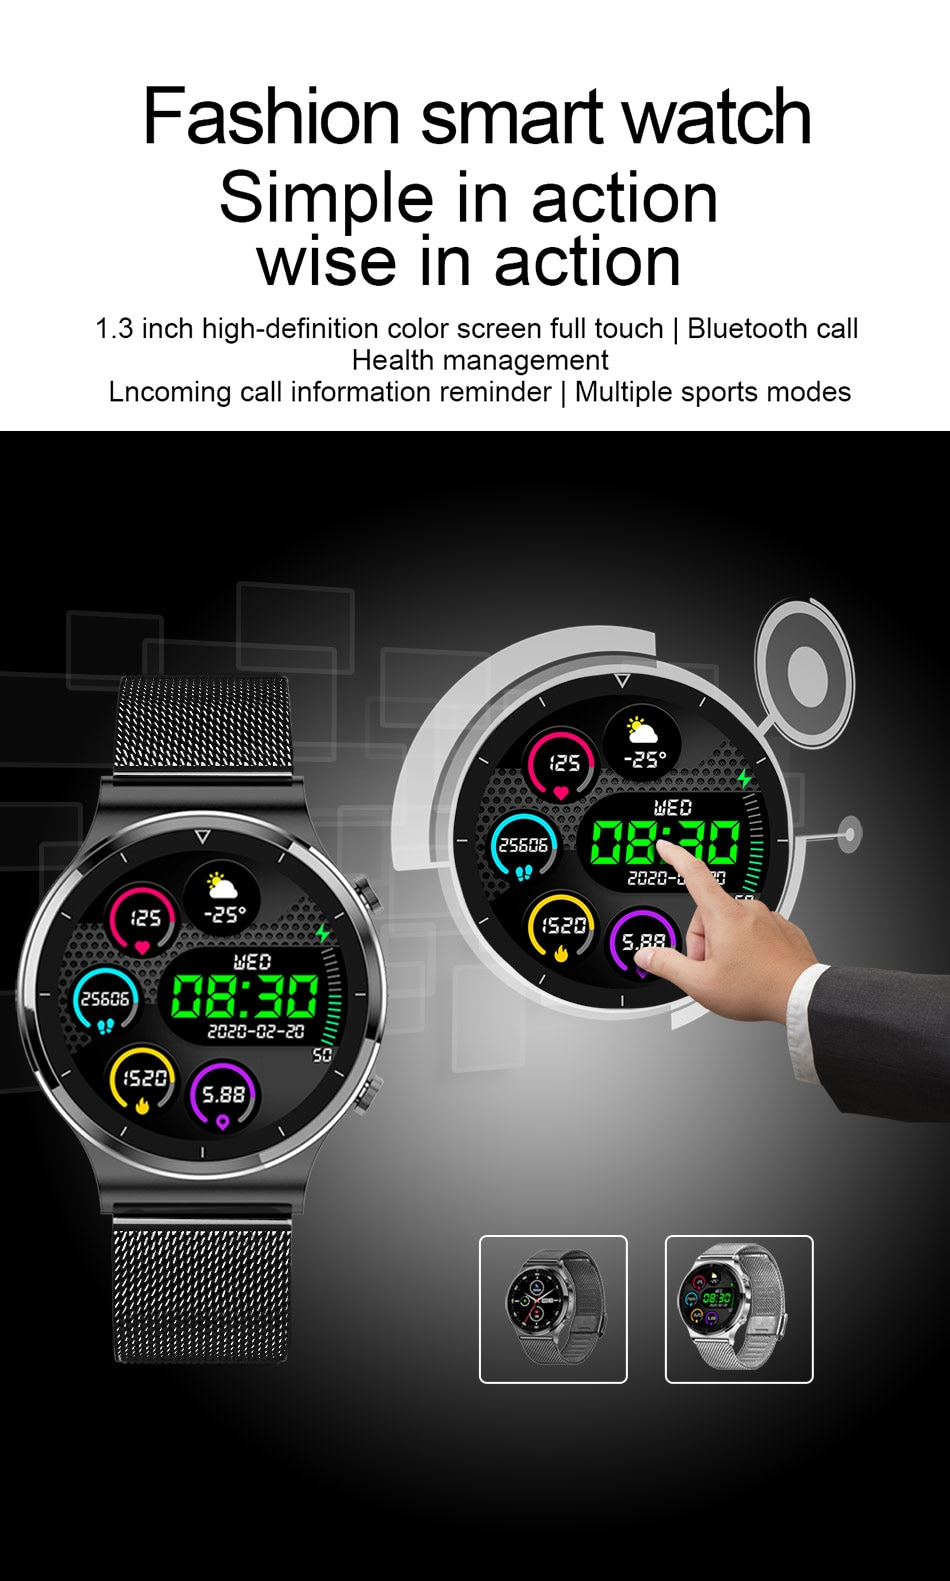 H91a2a355c8c84d2eb399a86e0bb21263d - LIGE New Smart watch Men Heart rate Blood pressure Full touch screen sports Fitness watch Bluetooth for Android iOS smart watch